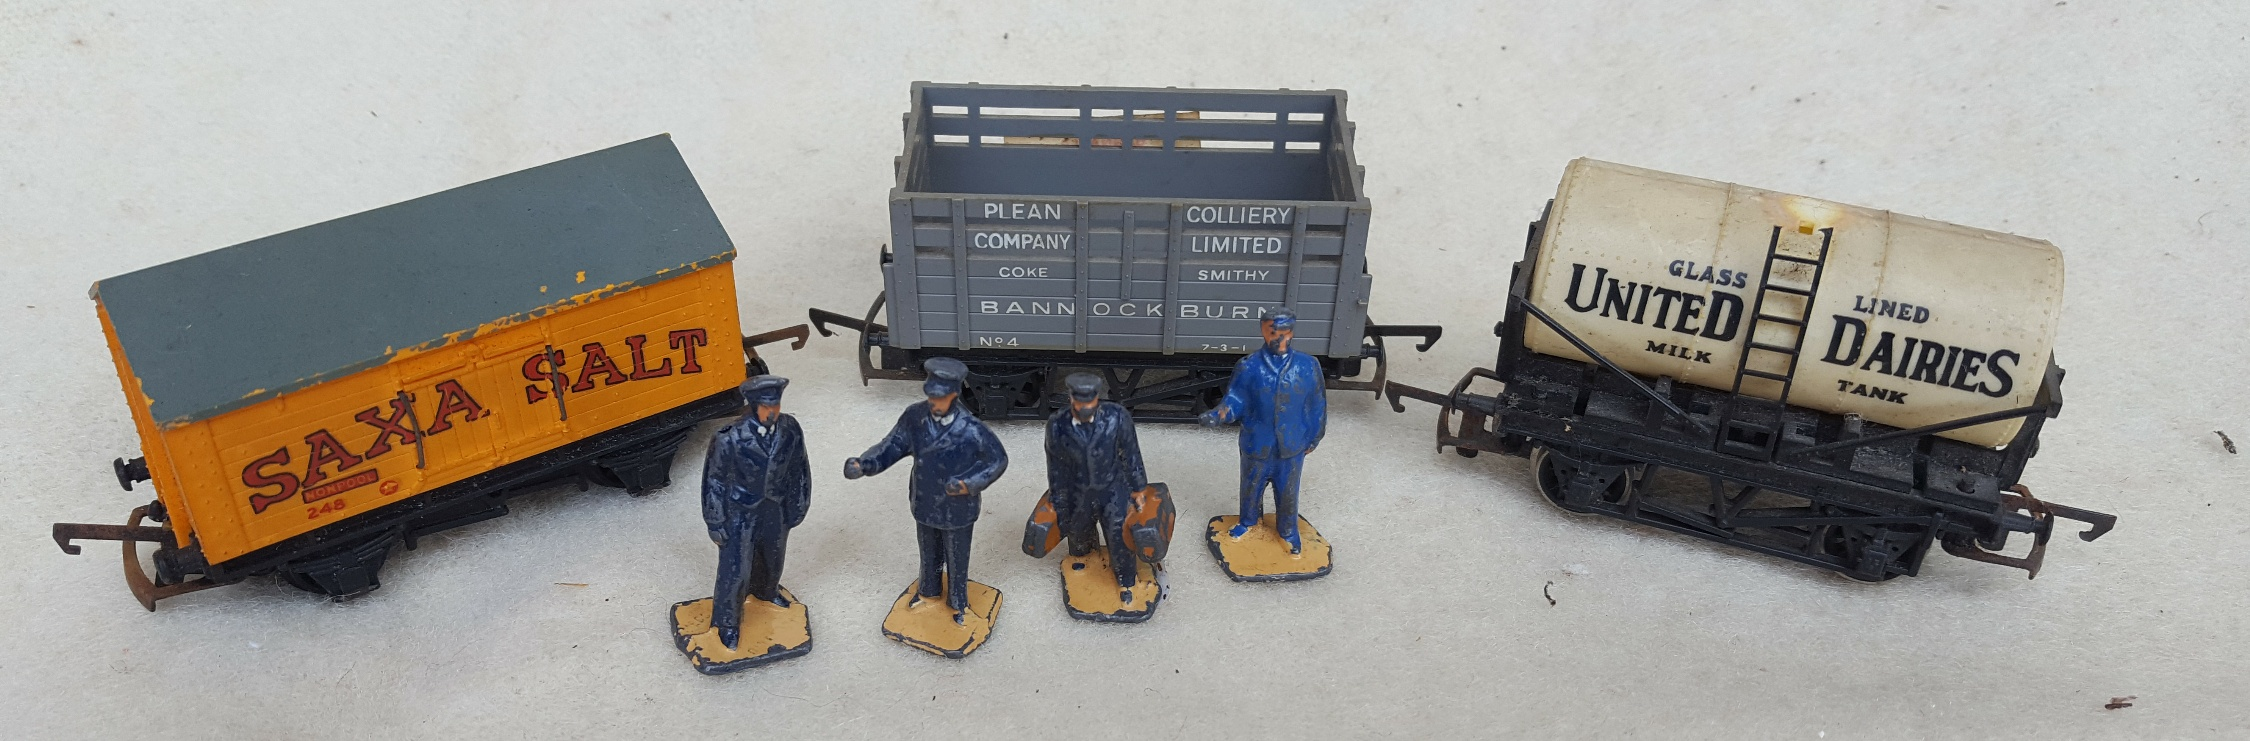 Lot 59 - Vintage Model Trains Rolling Stock & Metal Hornby Figures 00 Gauge NO RESERVE